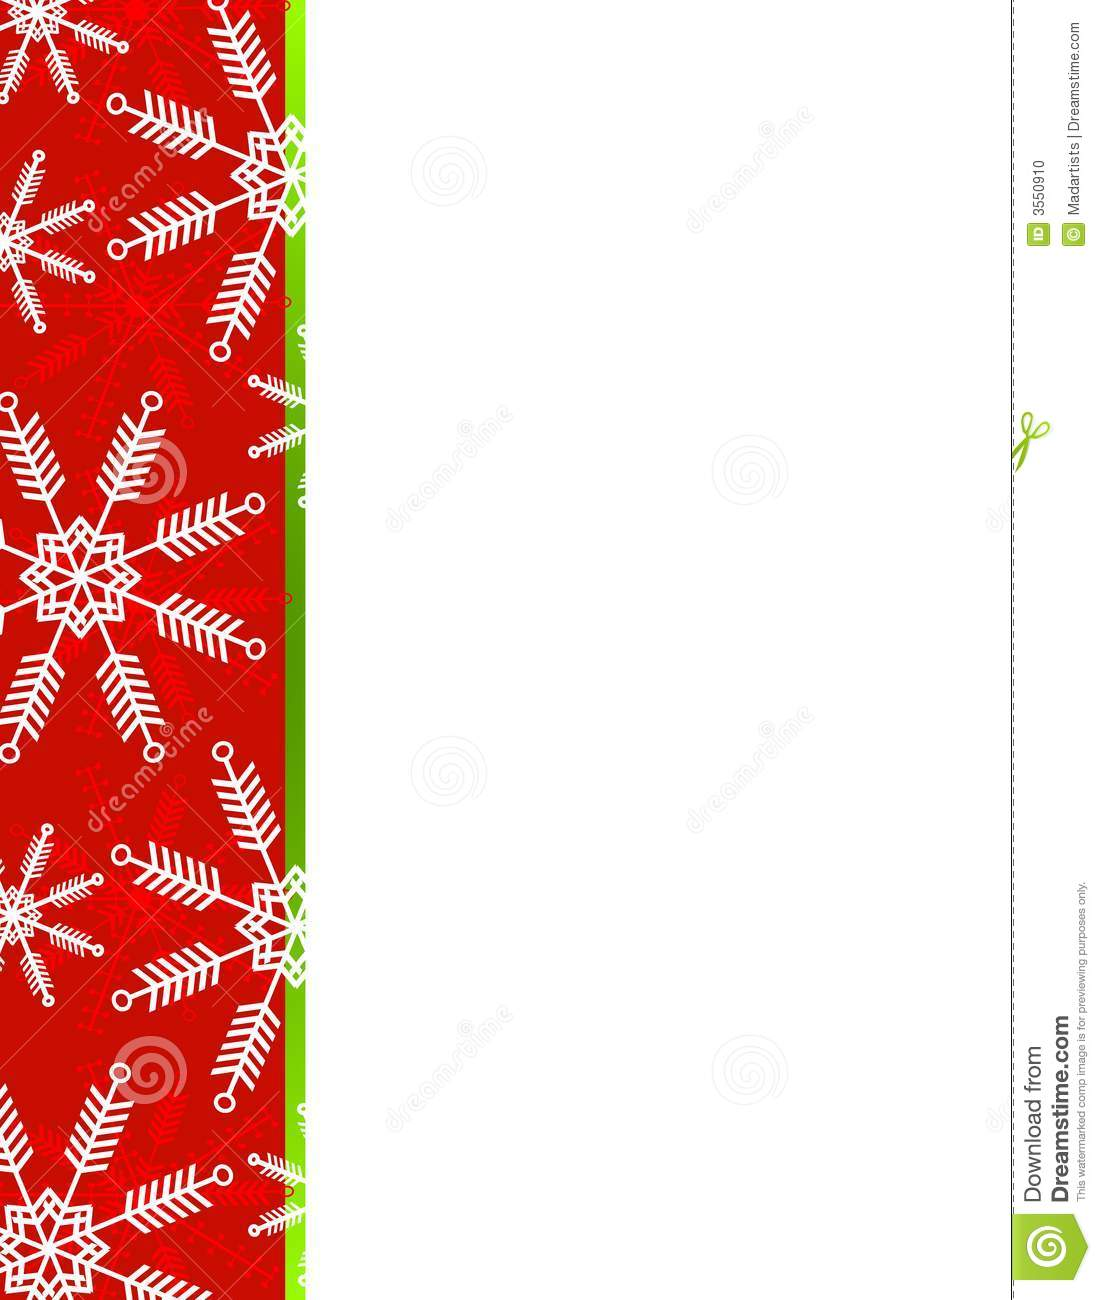 snowflakes christmas border stock illustration illustration of rh dreamstime com snowflake border clip art free snowflake border clipart